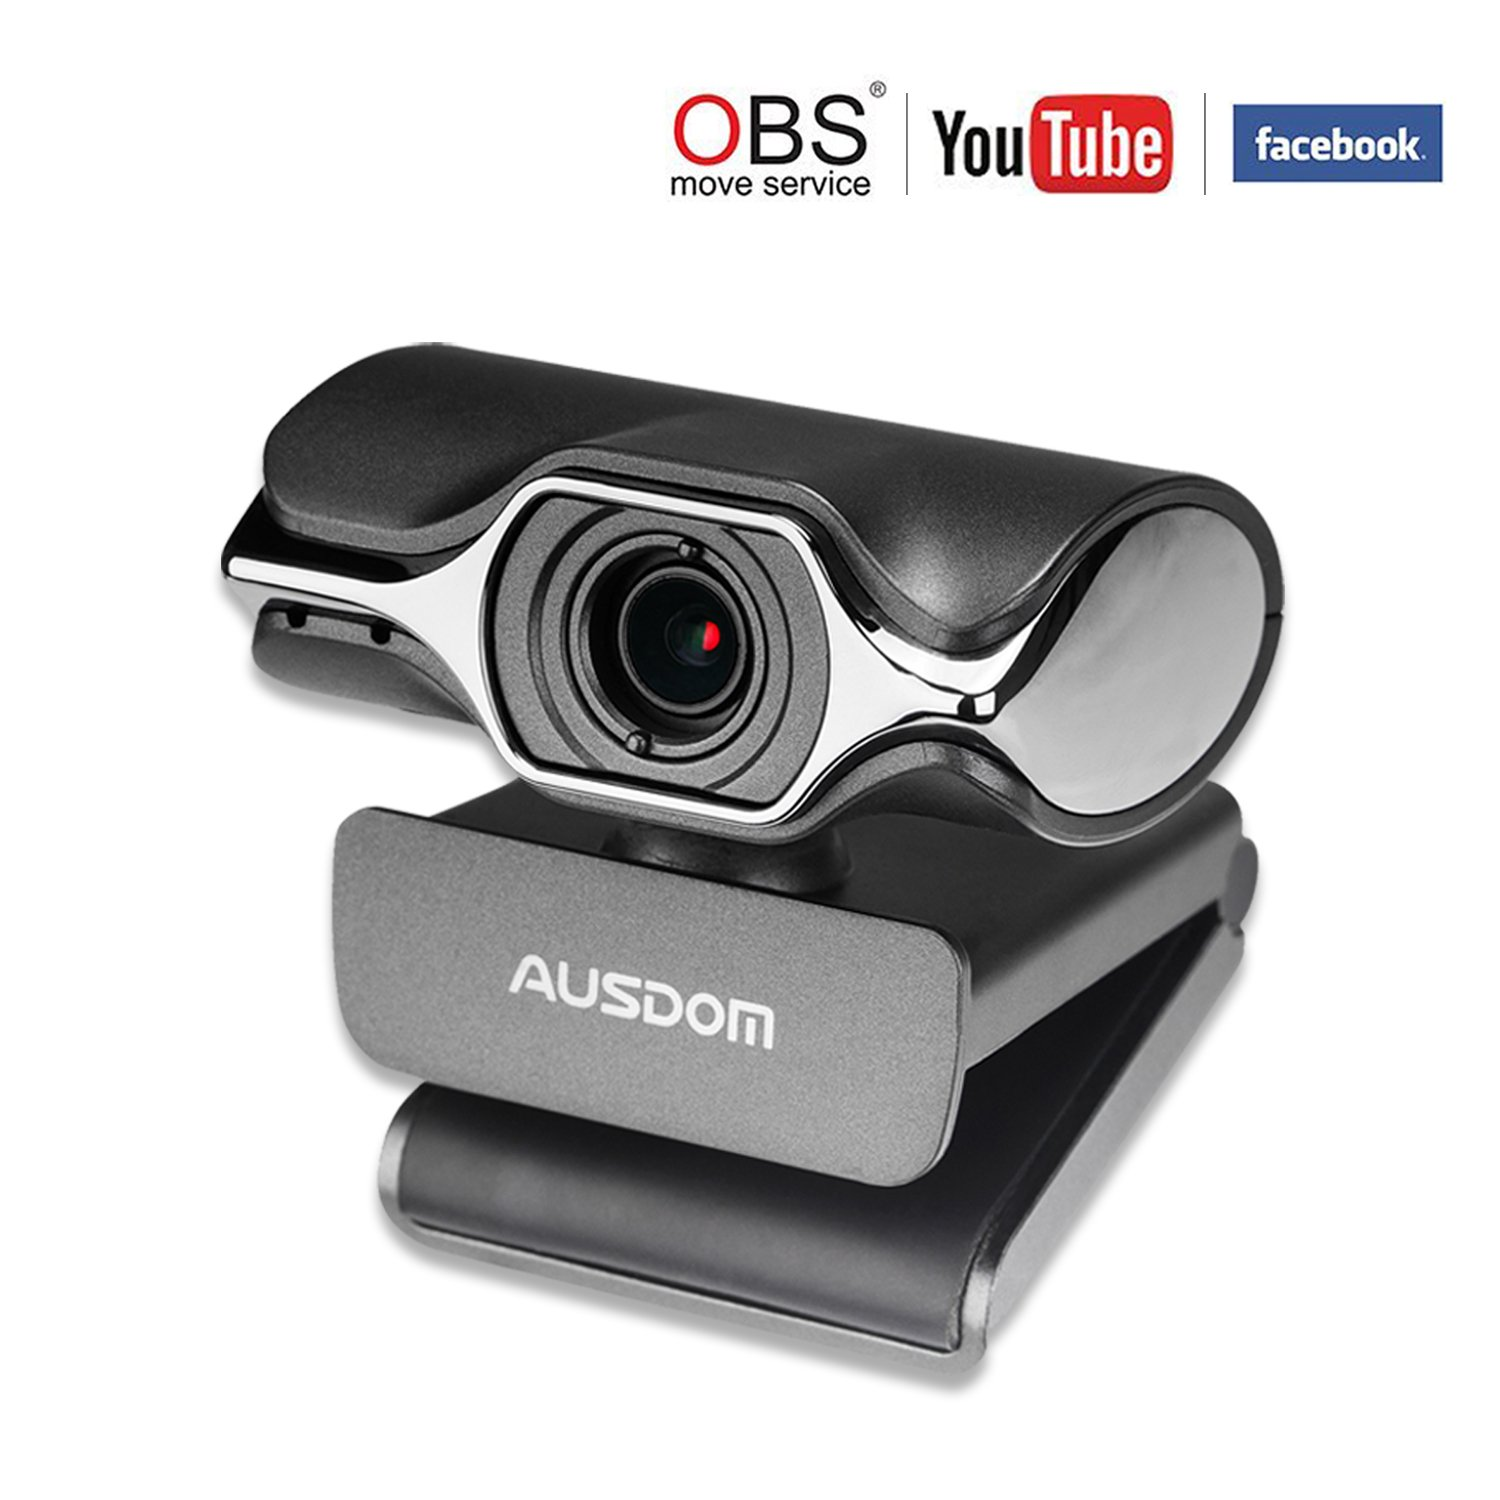 Webcam Streaming 1080P Ausdom Upgraded AW620 Pro Web Camera for Desktop PC Laptop Computer with Nosie Cancelling Microphone USB Plug and Play for Windows Mac Skype OBS Live Streaming YouTube Twitch